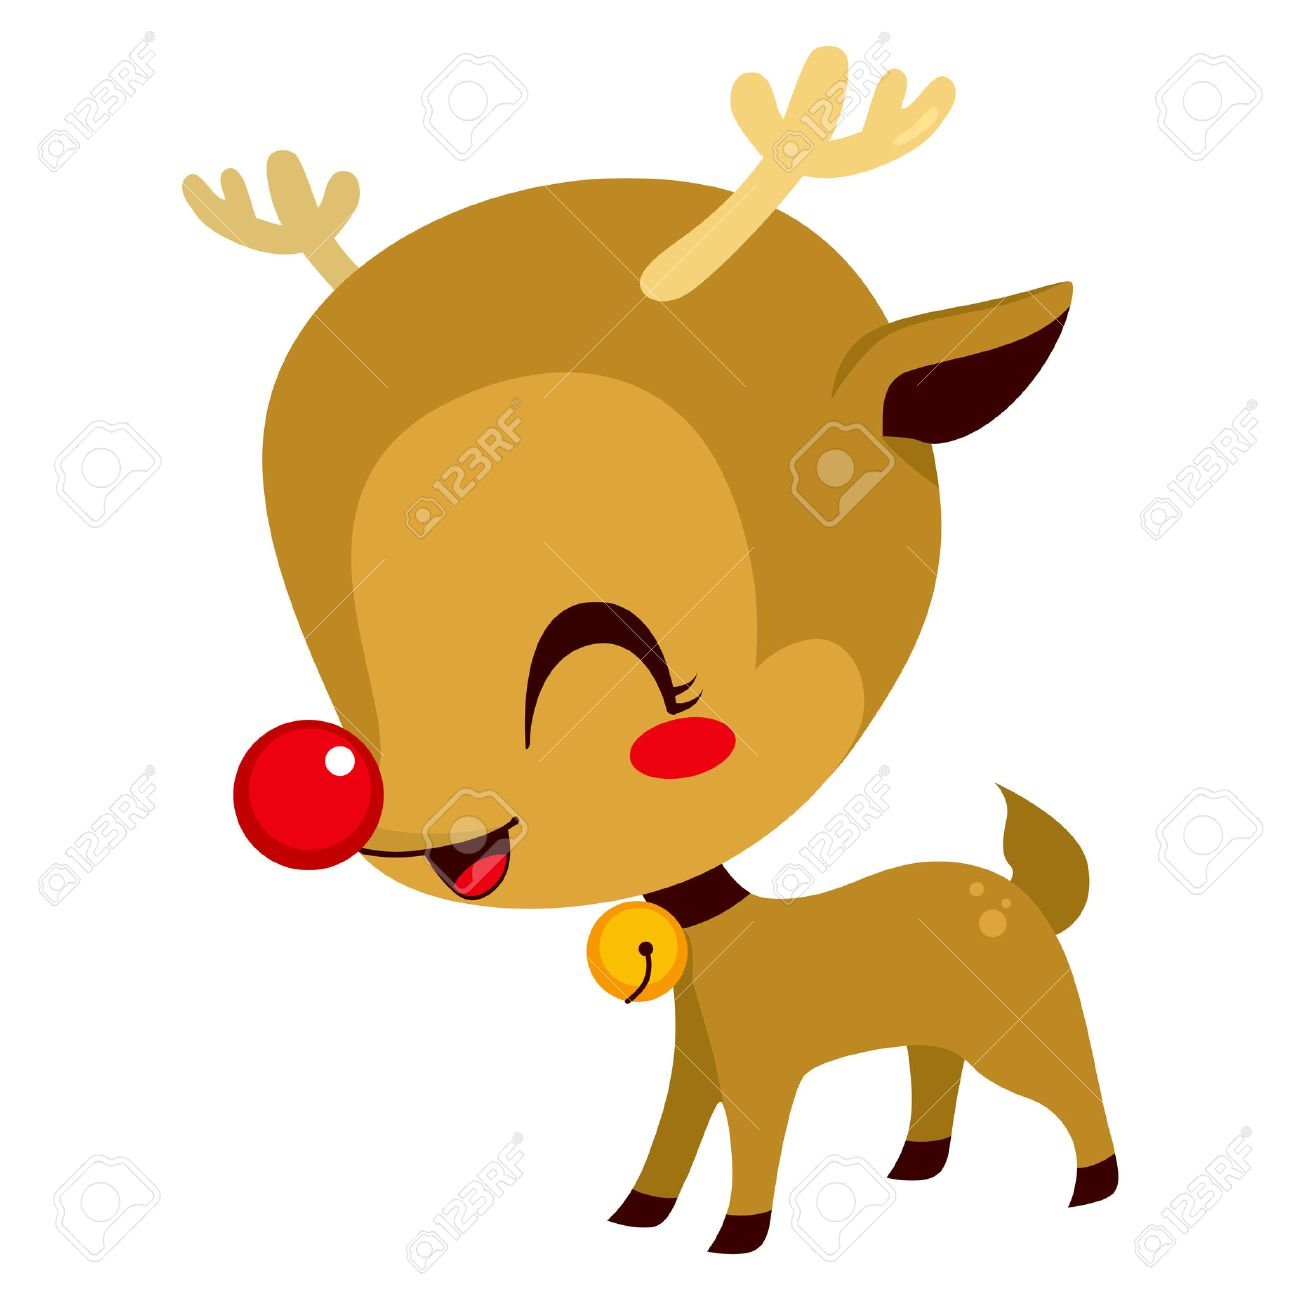 illustration of cute little rudolph the red nosed reindeer cartoon royalty free cliparts vectors and stock illustration image 22527631 illustration of cute little rudolph the red nosed reindeer cartoon